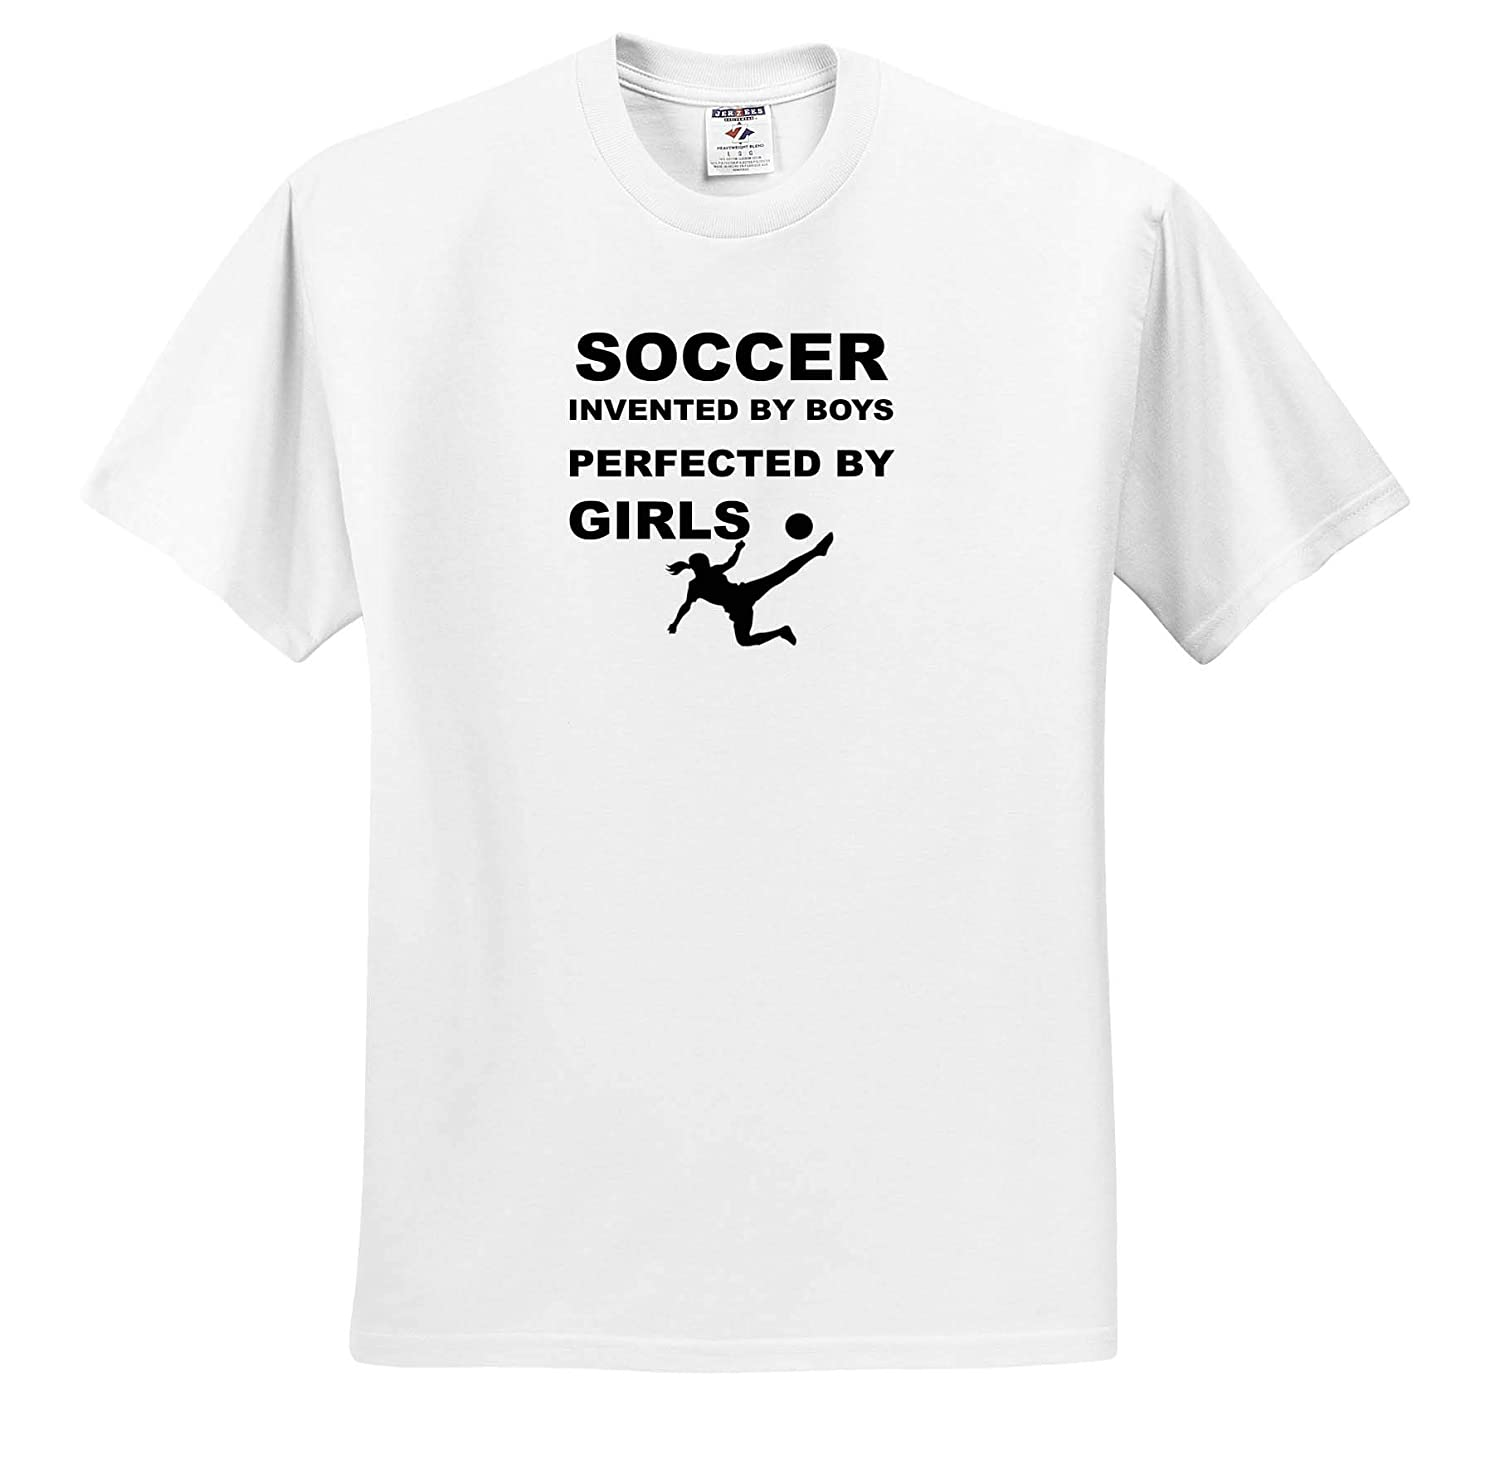 3dRose Carrie Merchant Quote T-Shirts Image of Soccer Invented by Boys Perfected by Girls